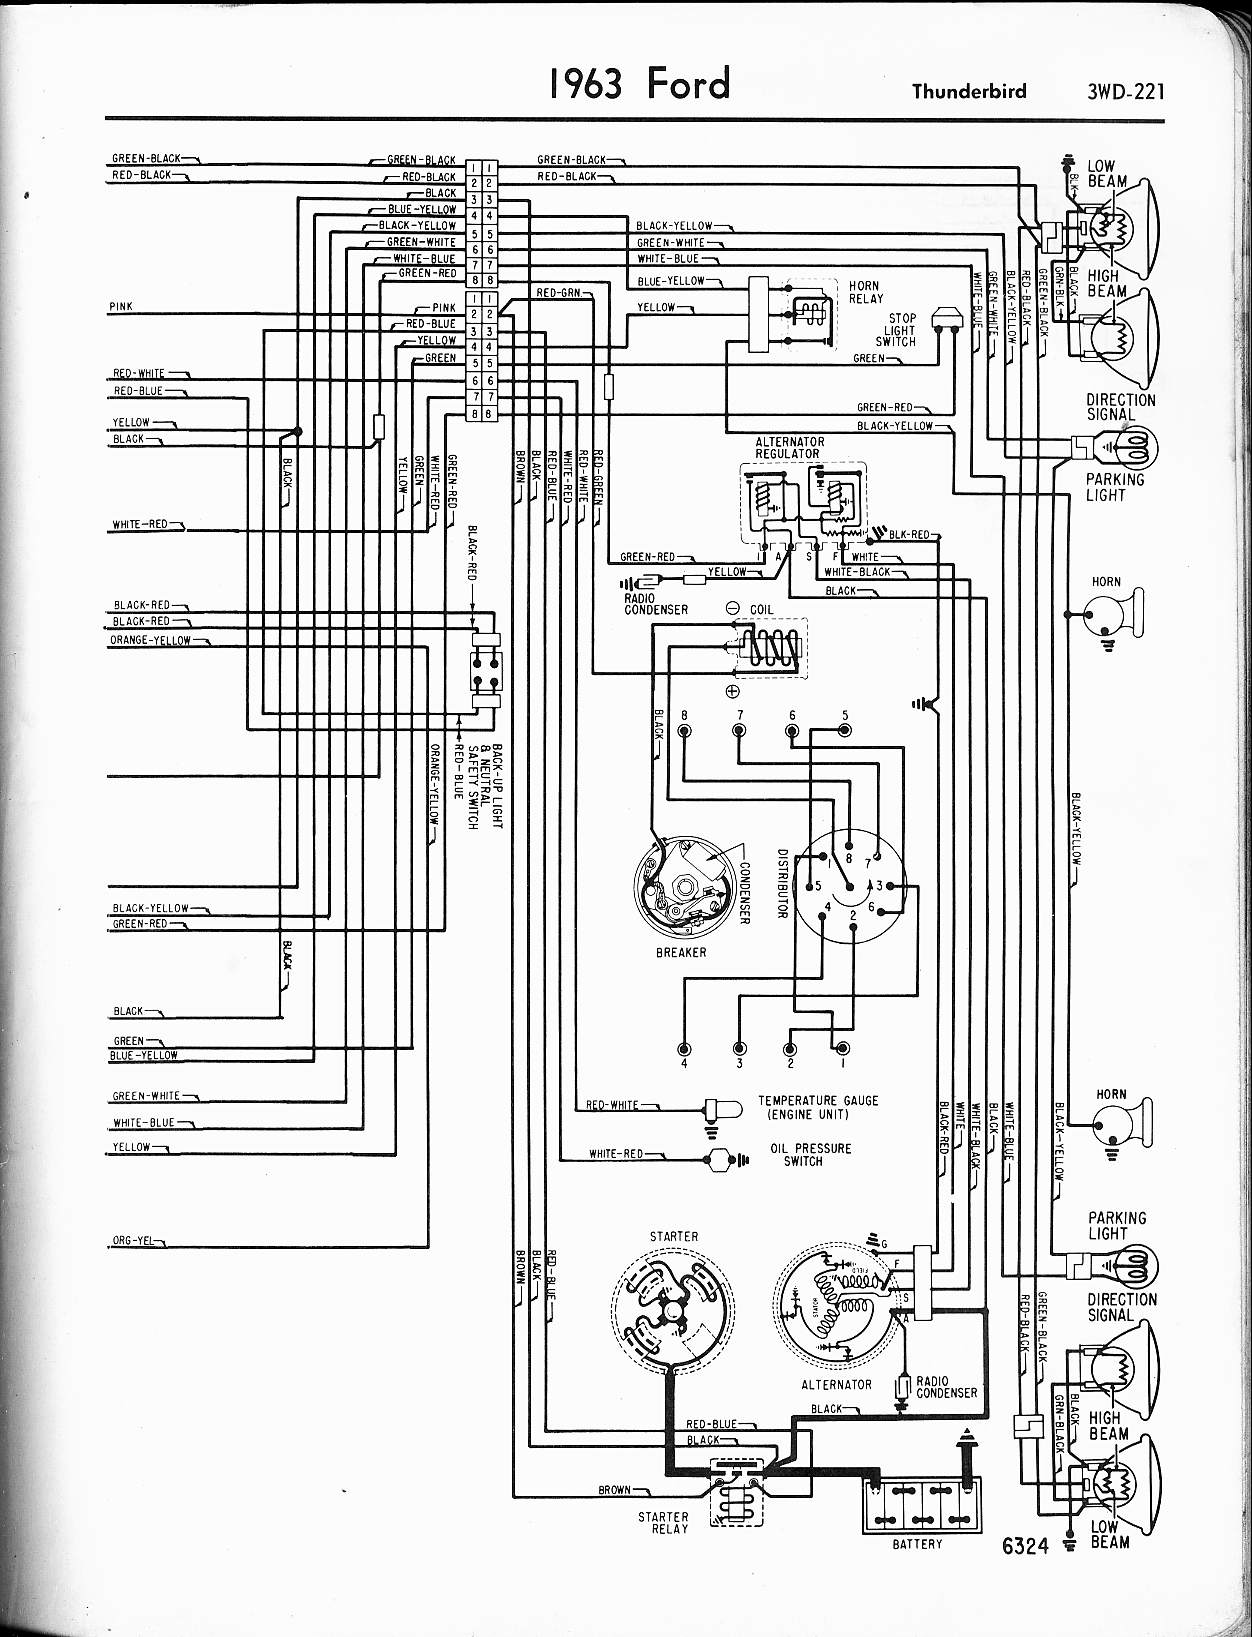 1963 Ford Generator Wiring Diagram Schema Diagrams 8n 57 65 Electrical